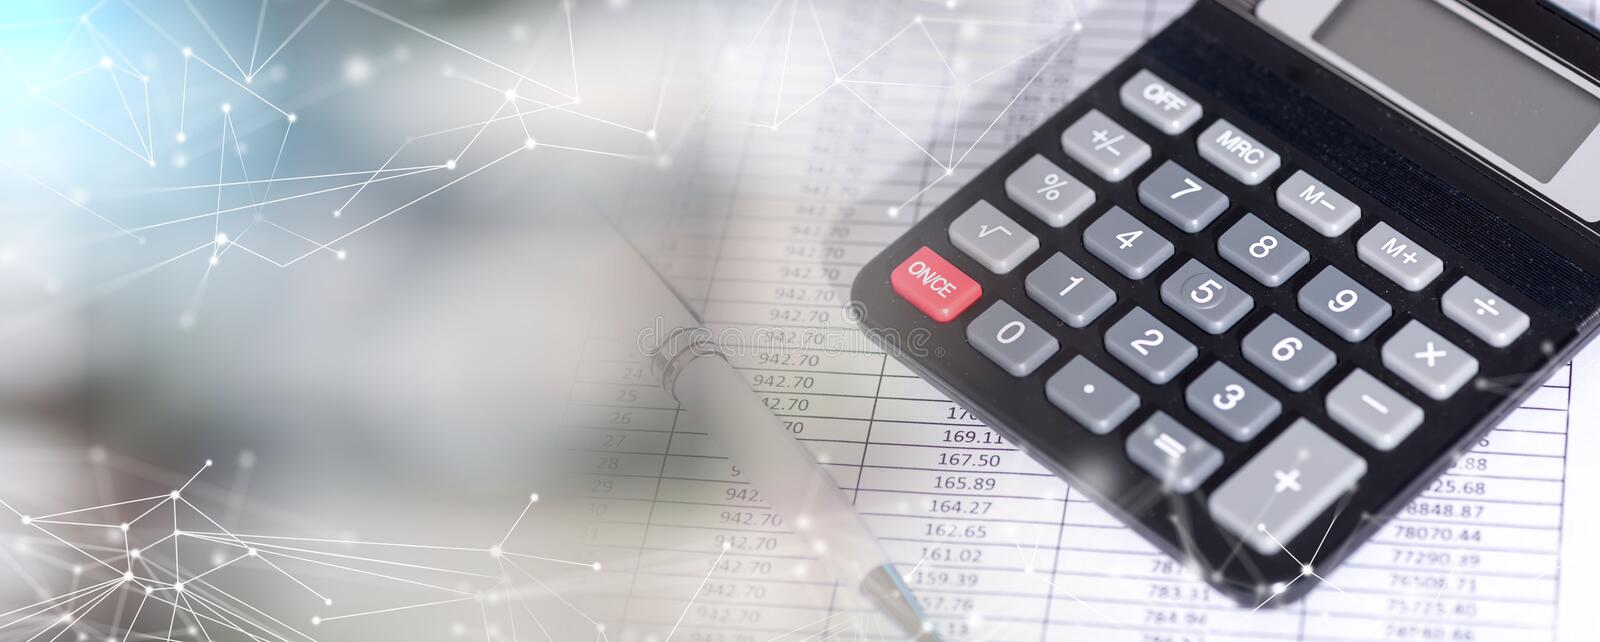 Calculator on financial documents, accounting concept; multiple exposure royalty free stock photos